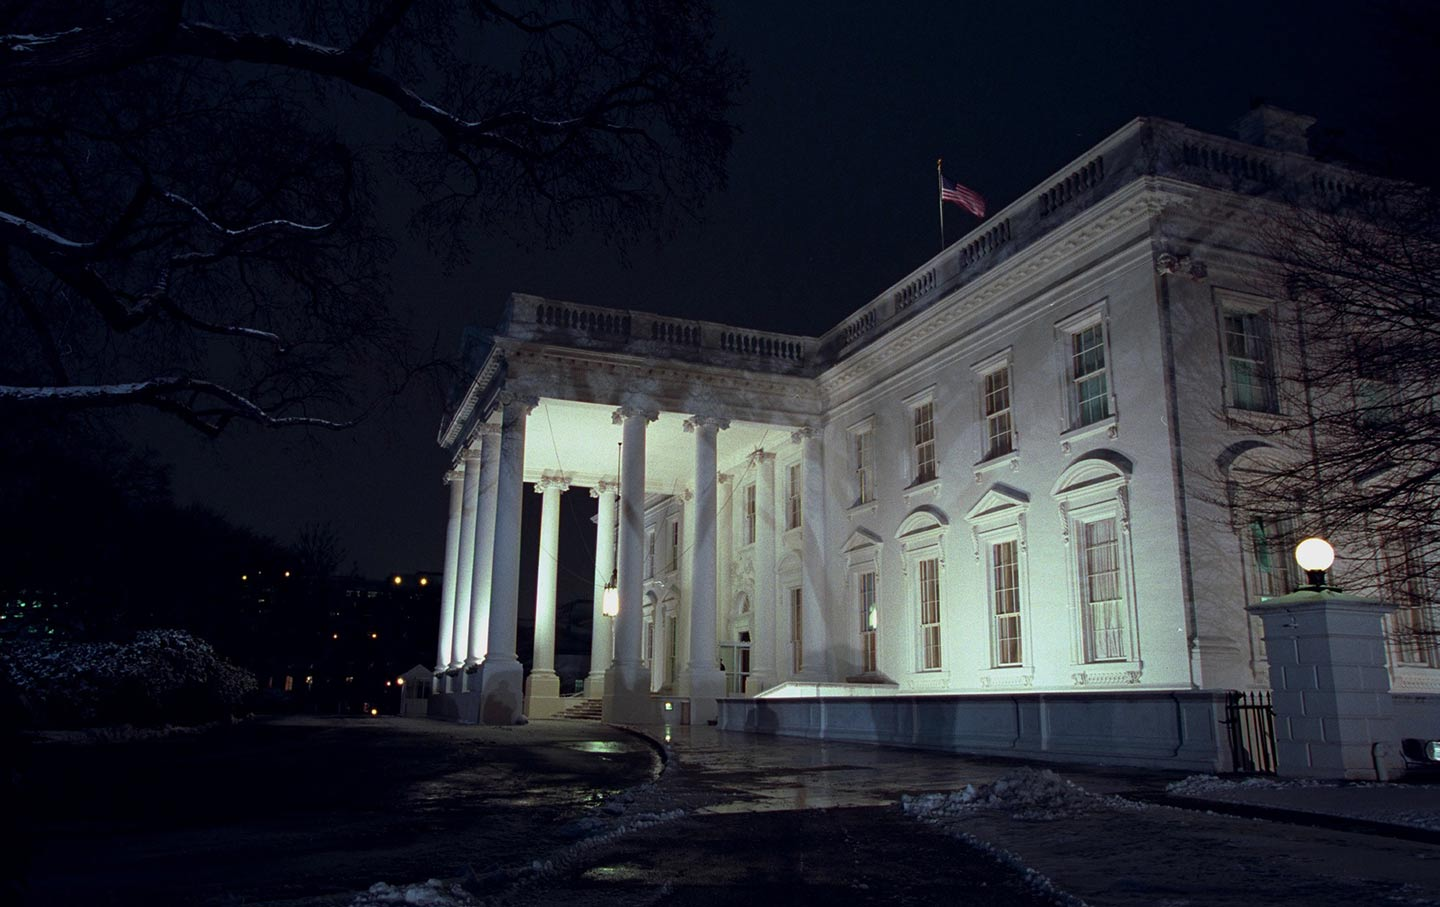 Undated photo of White House on dark night